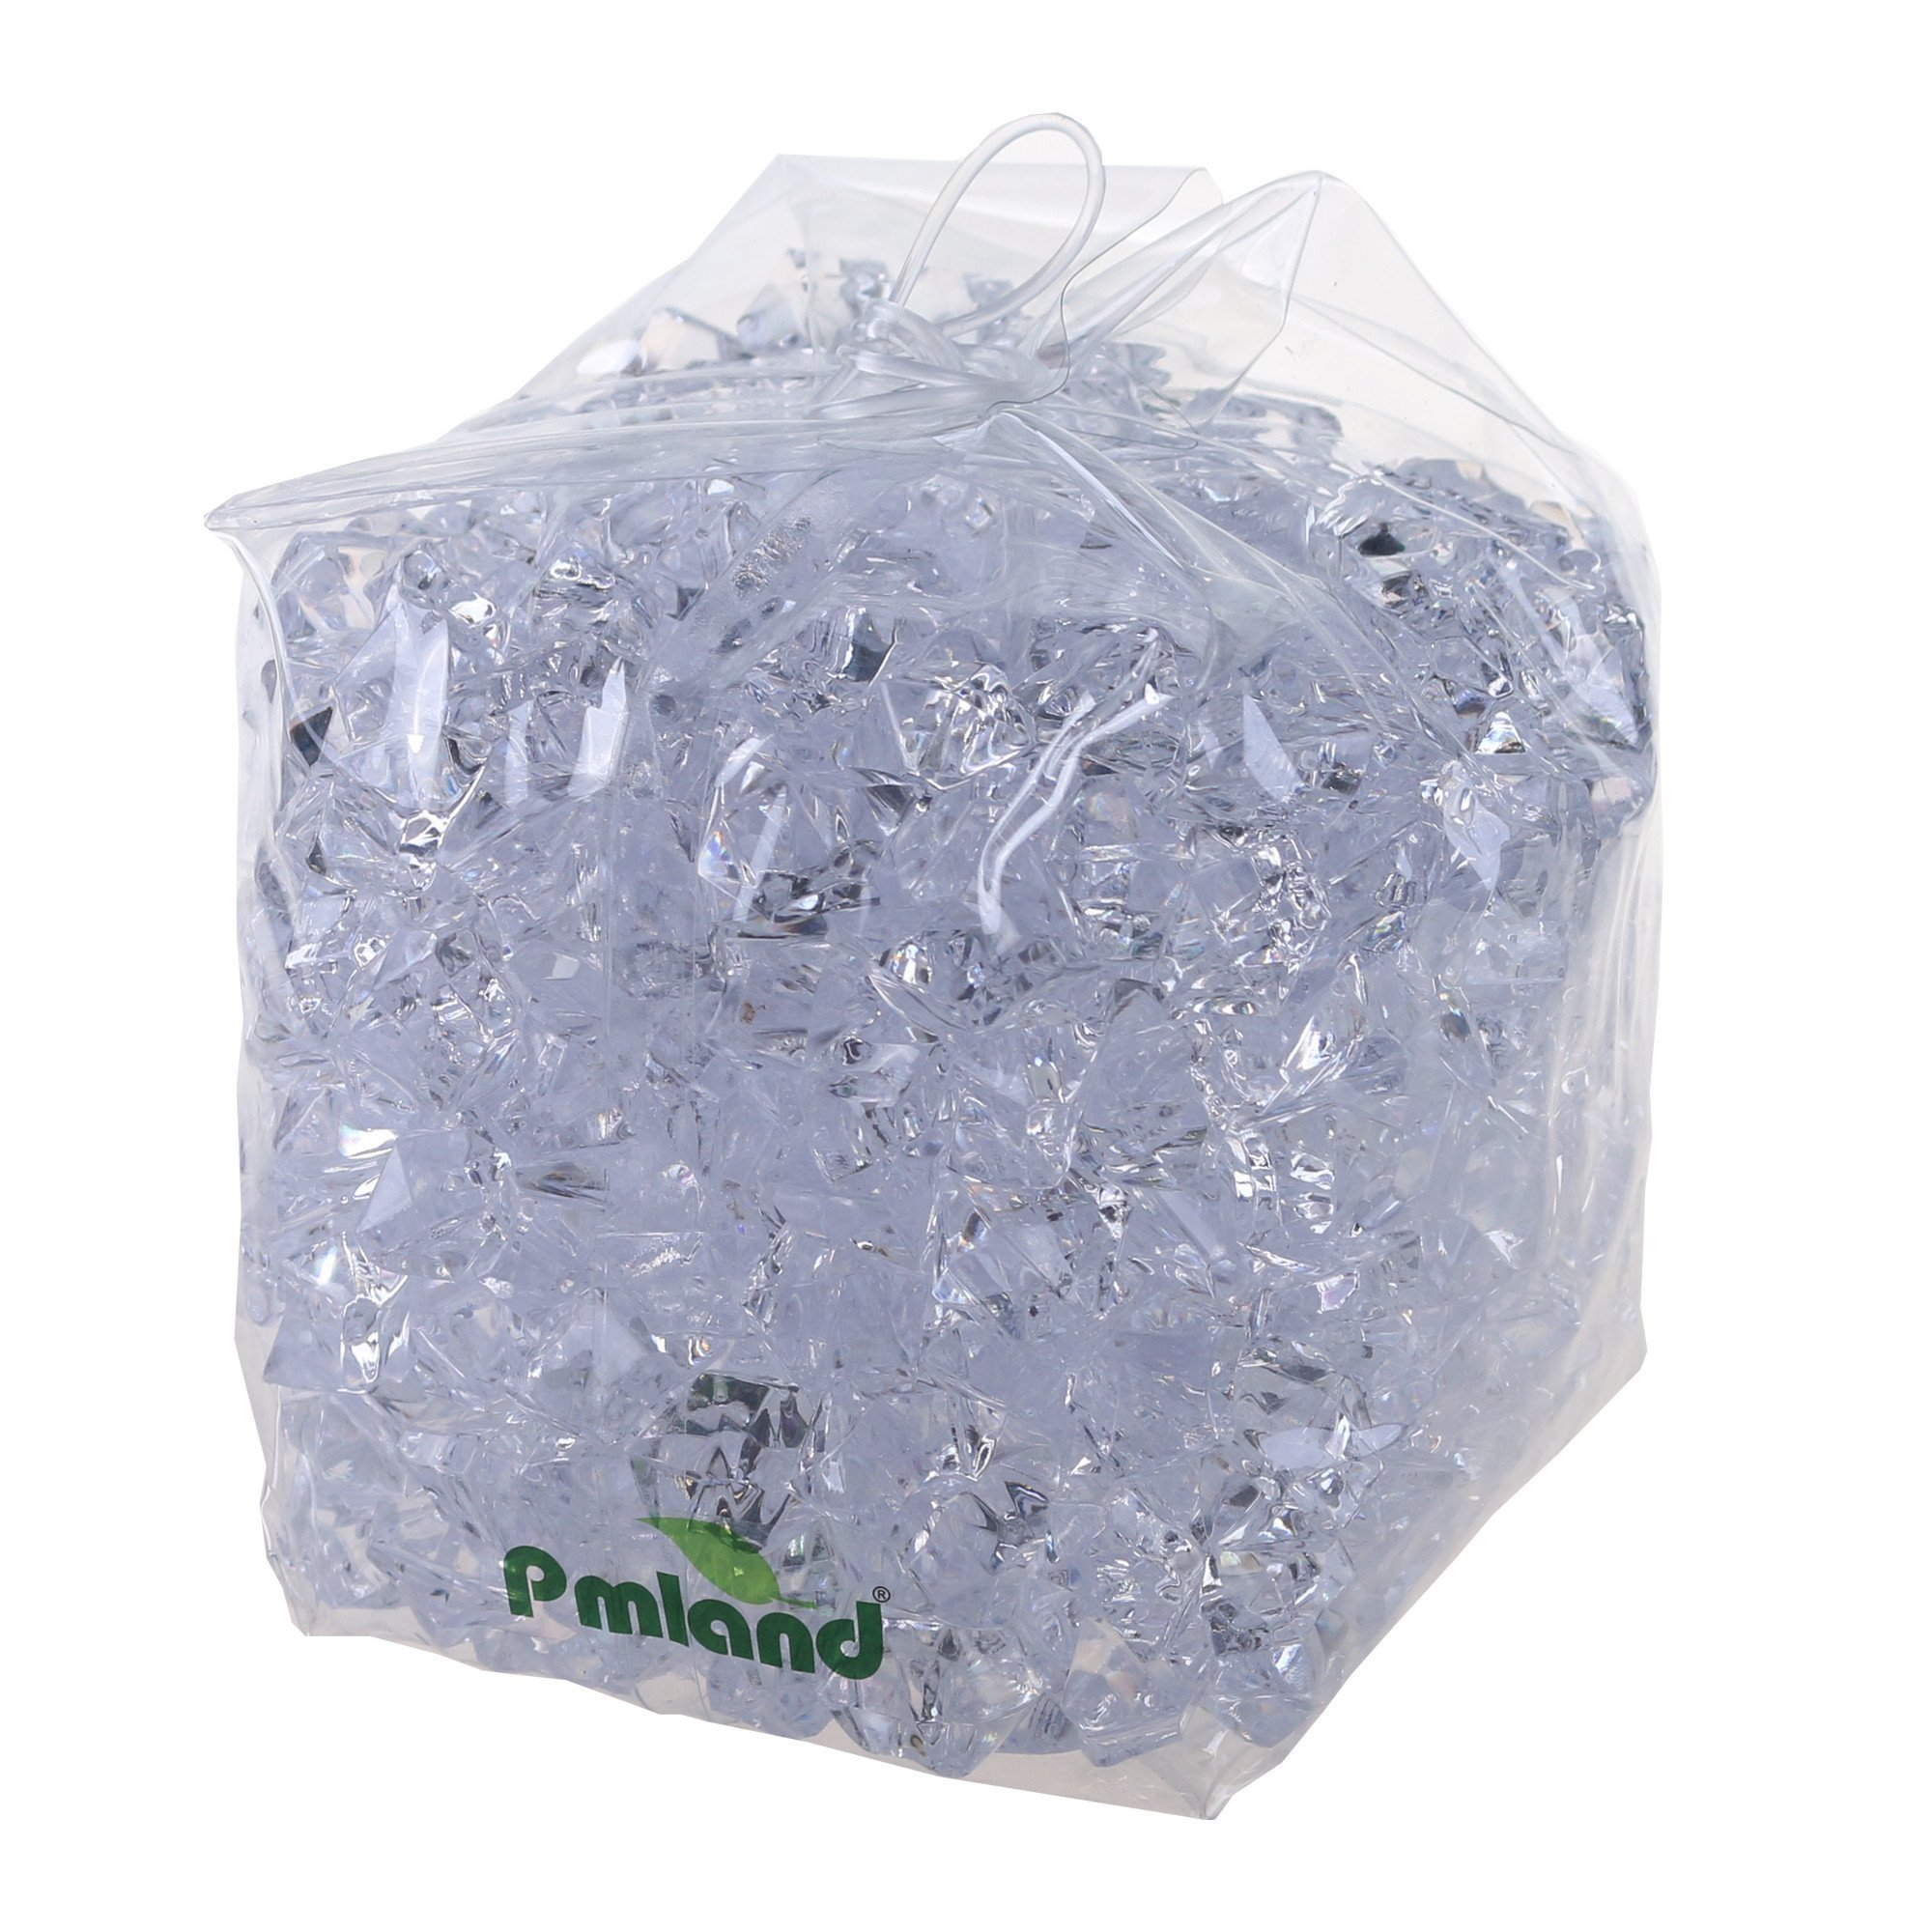 PMLAND Acrylic Ice Rock Cubes 3 Lbs Bag, Vase Filler or Table Decorating Idea- Clear by PMLAND